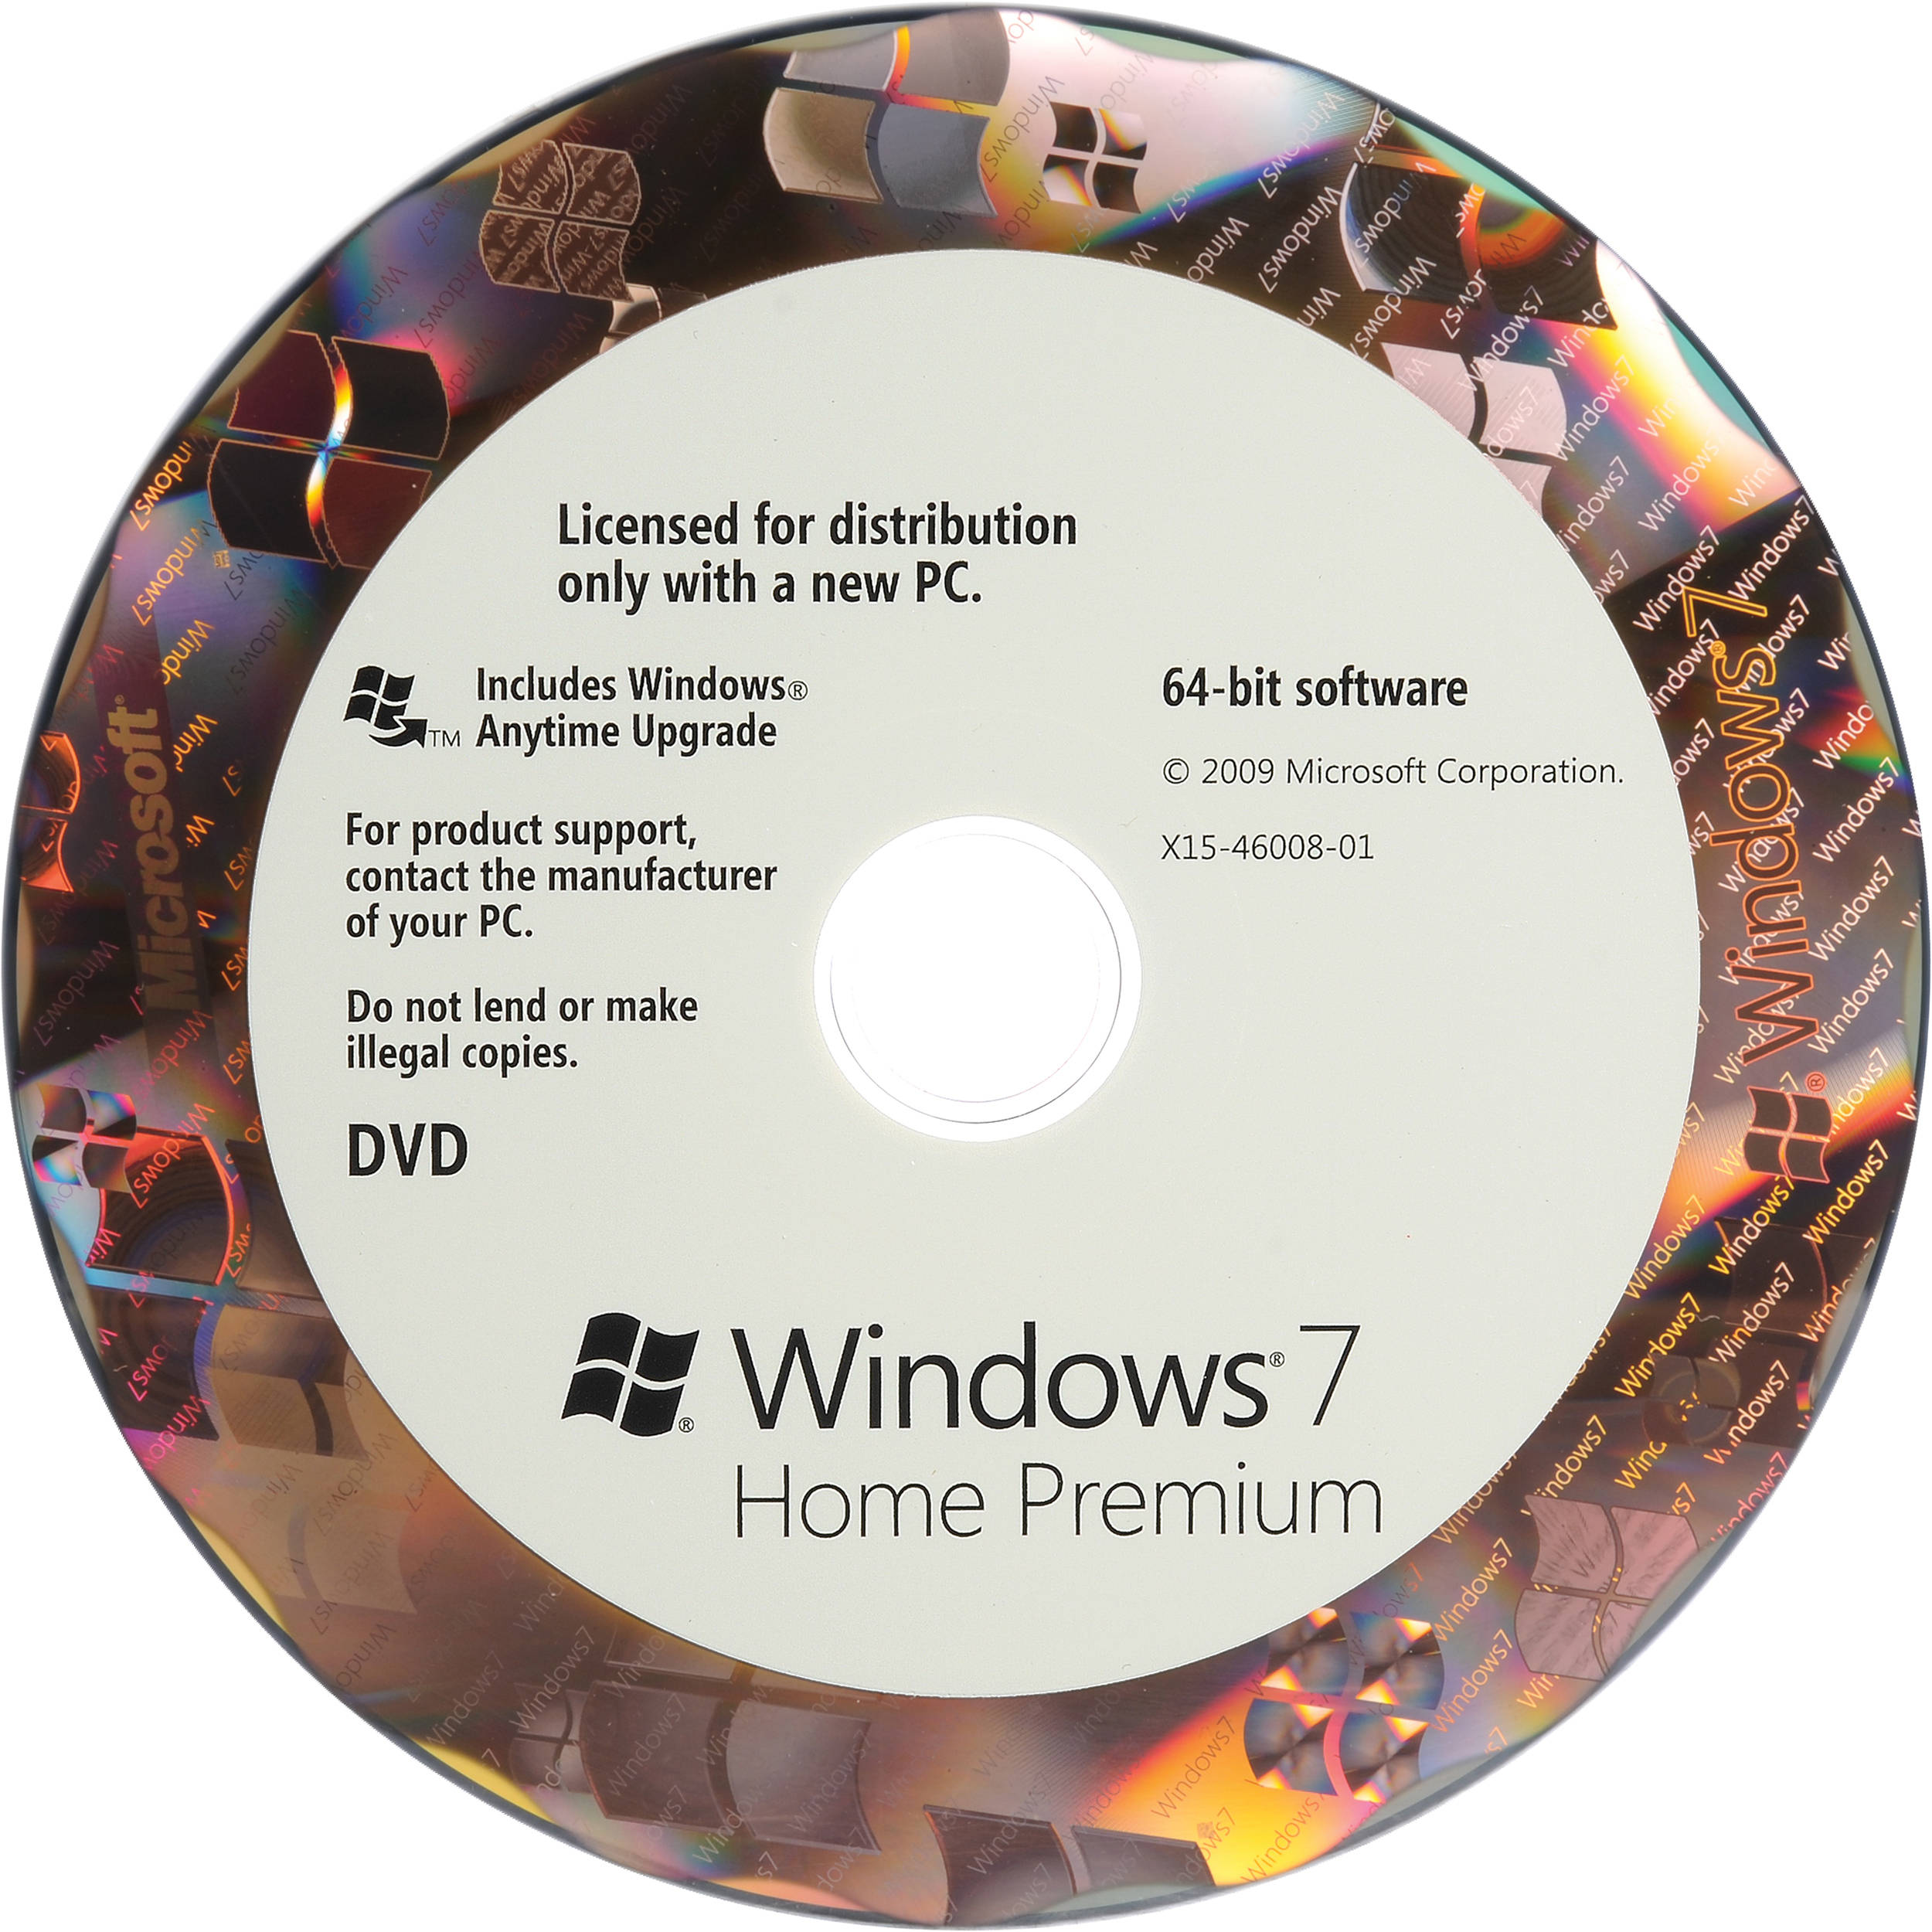 Microsoft Windows 7 Home Premium (64-bit) (OEM) DVD GFC-00599